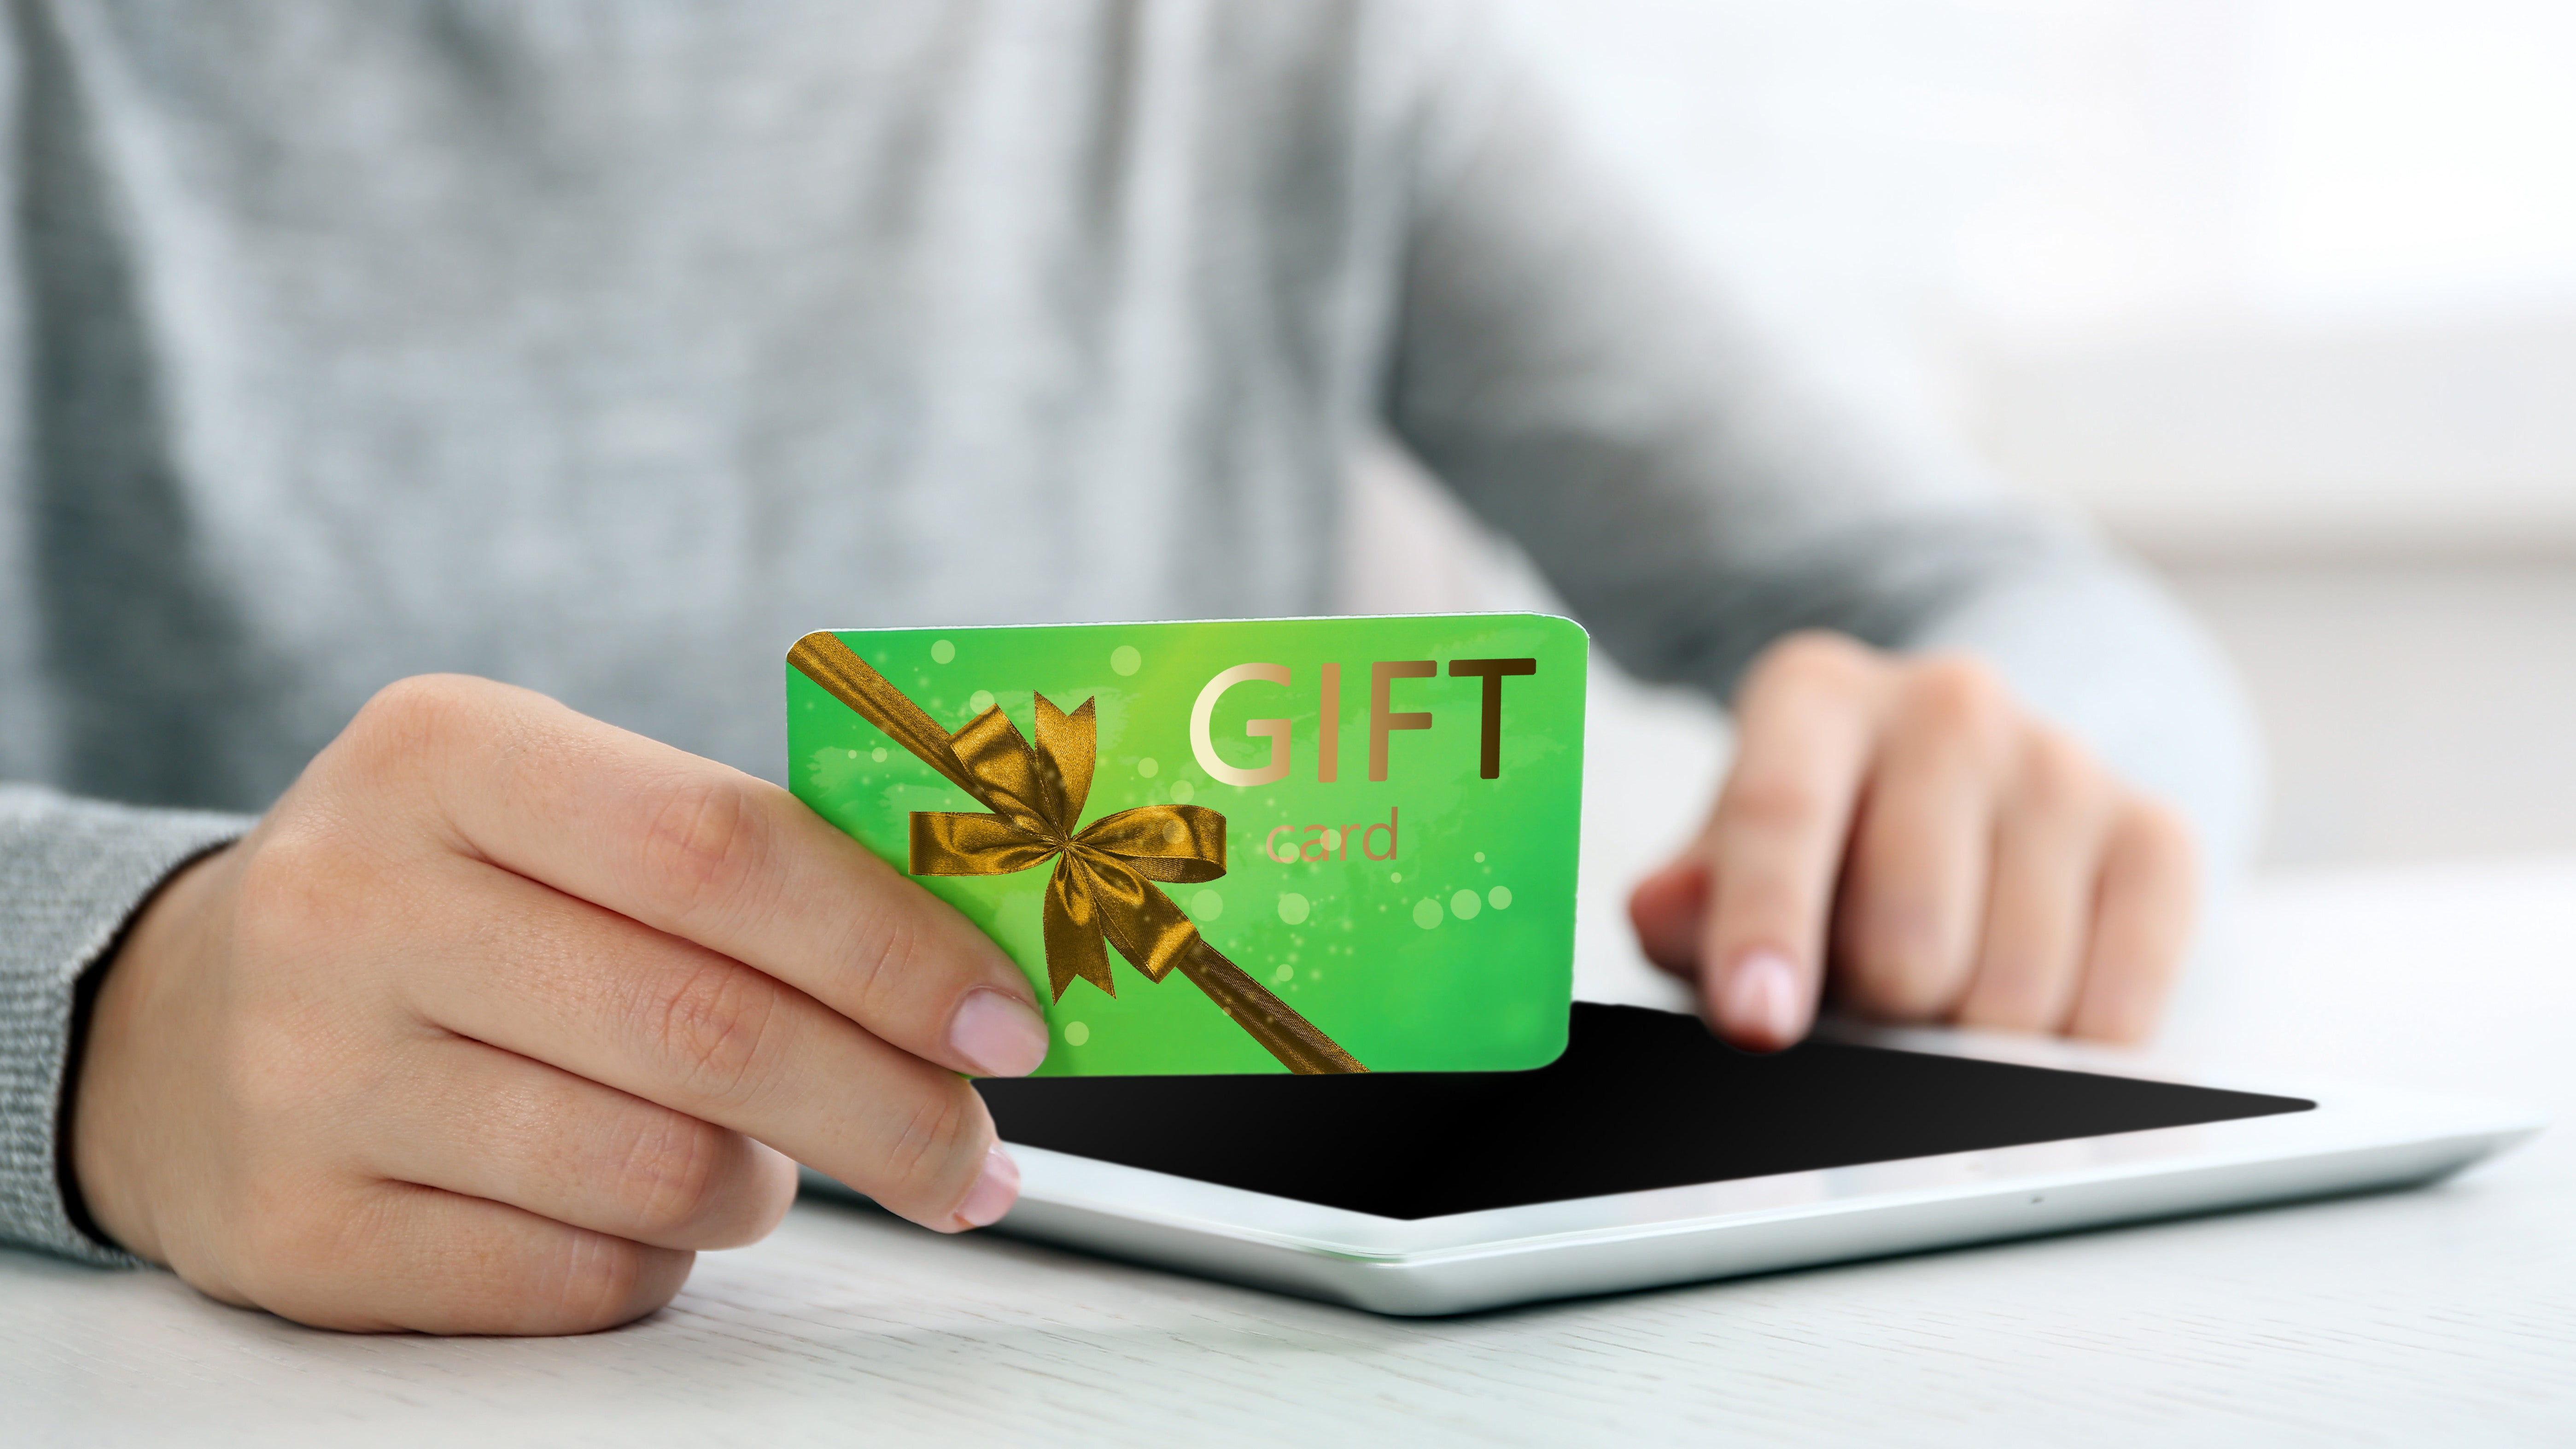 How To Use Up The Last Few Dollars On A Prepaid Gift Card